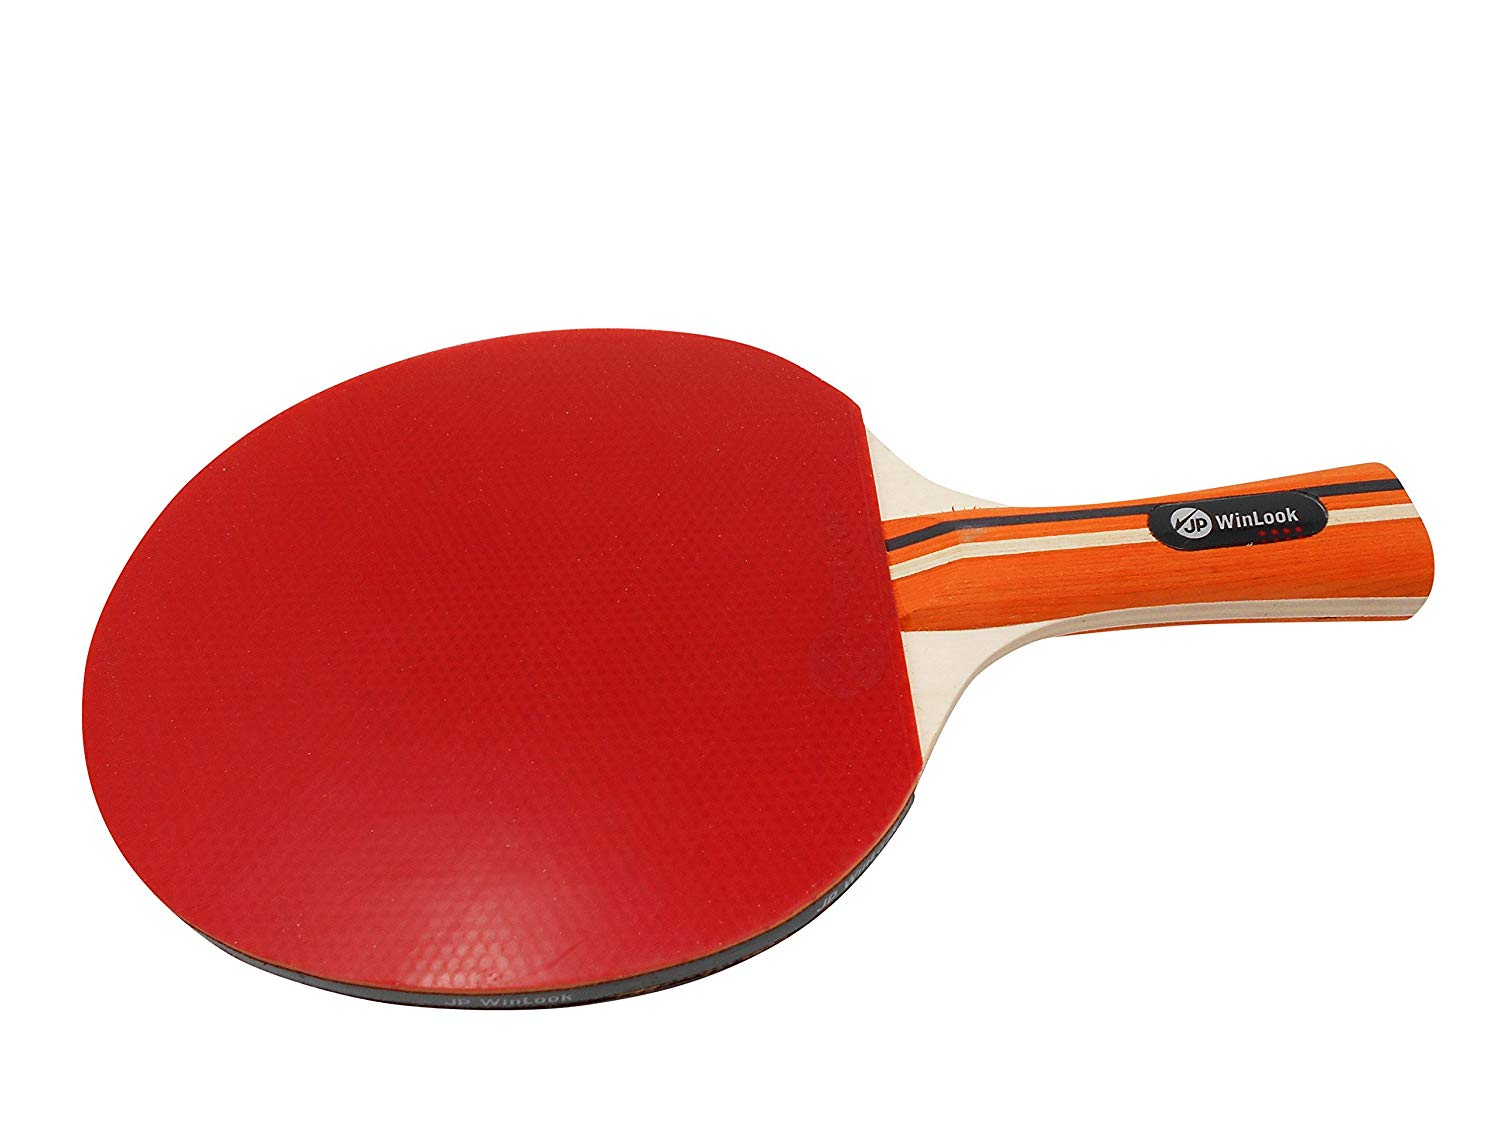 17 Best Ping Pong Paddles Reviews Killerspin Butterfly Dhs